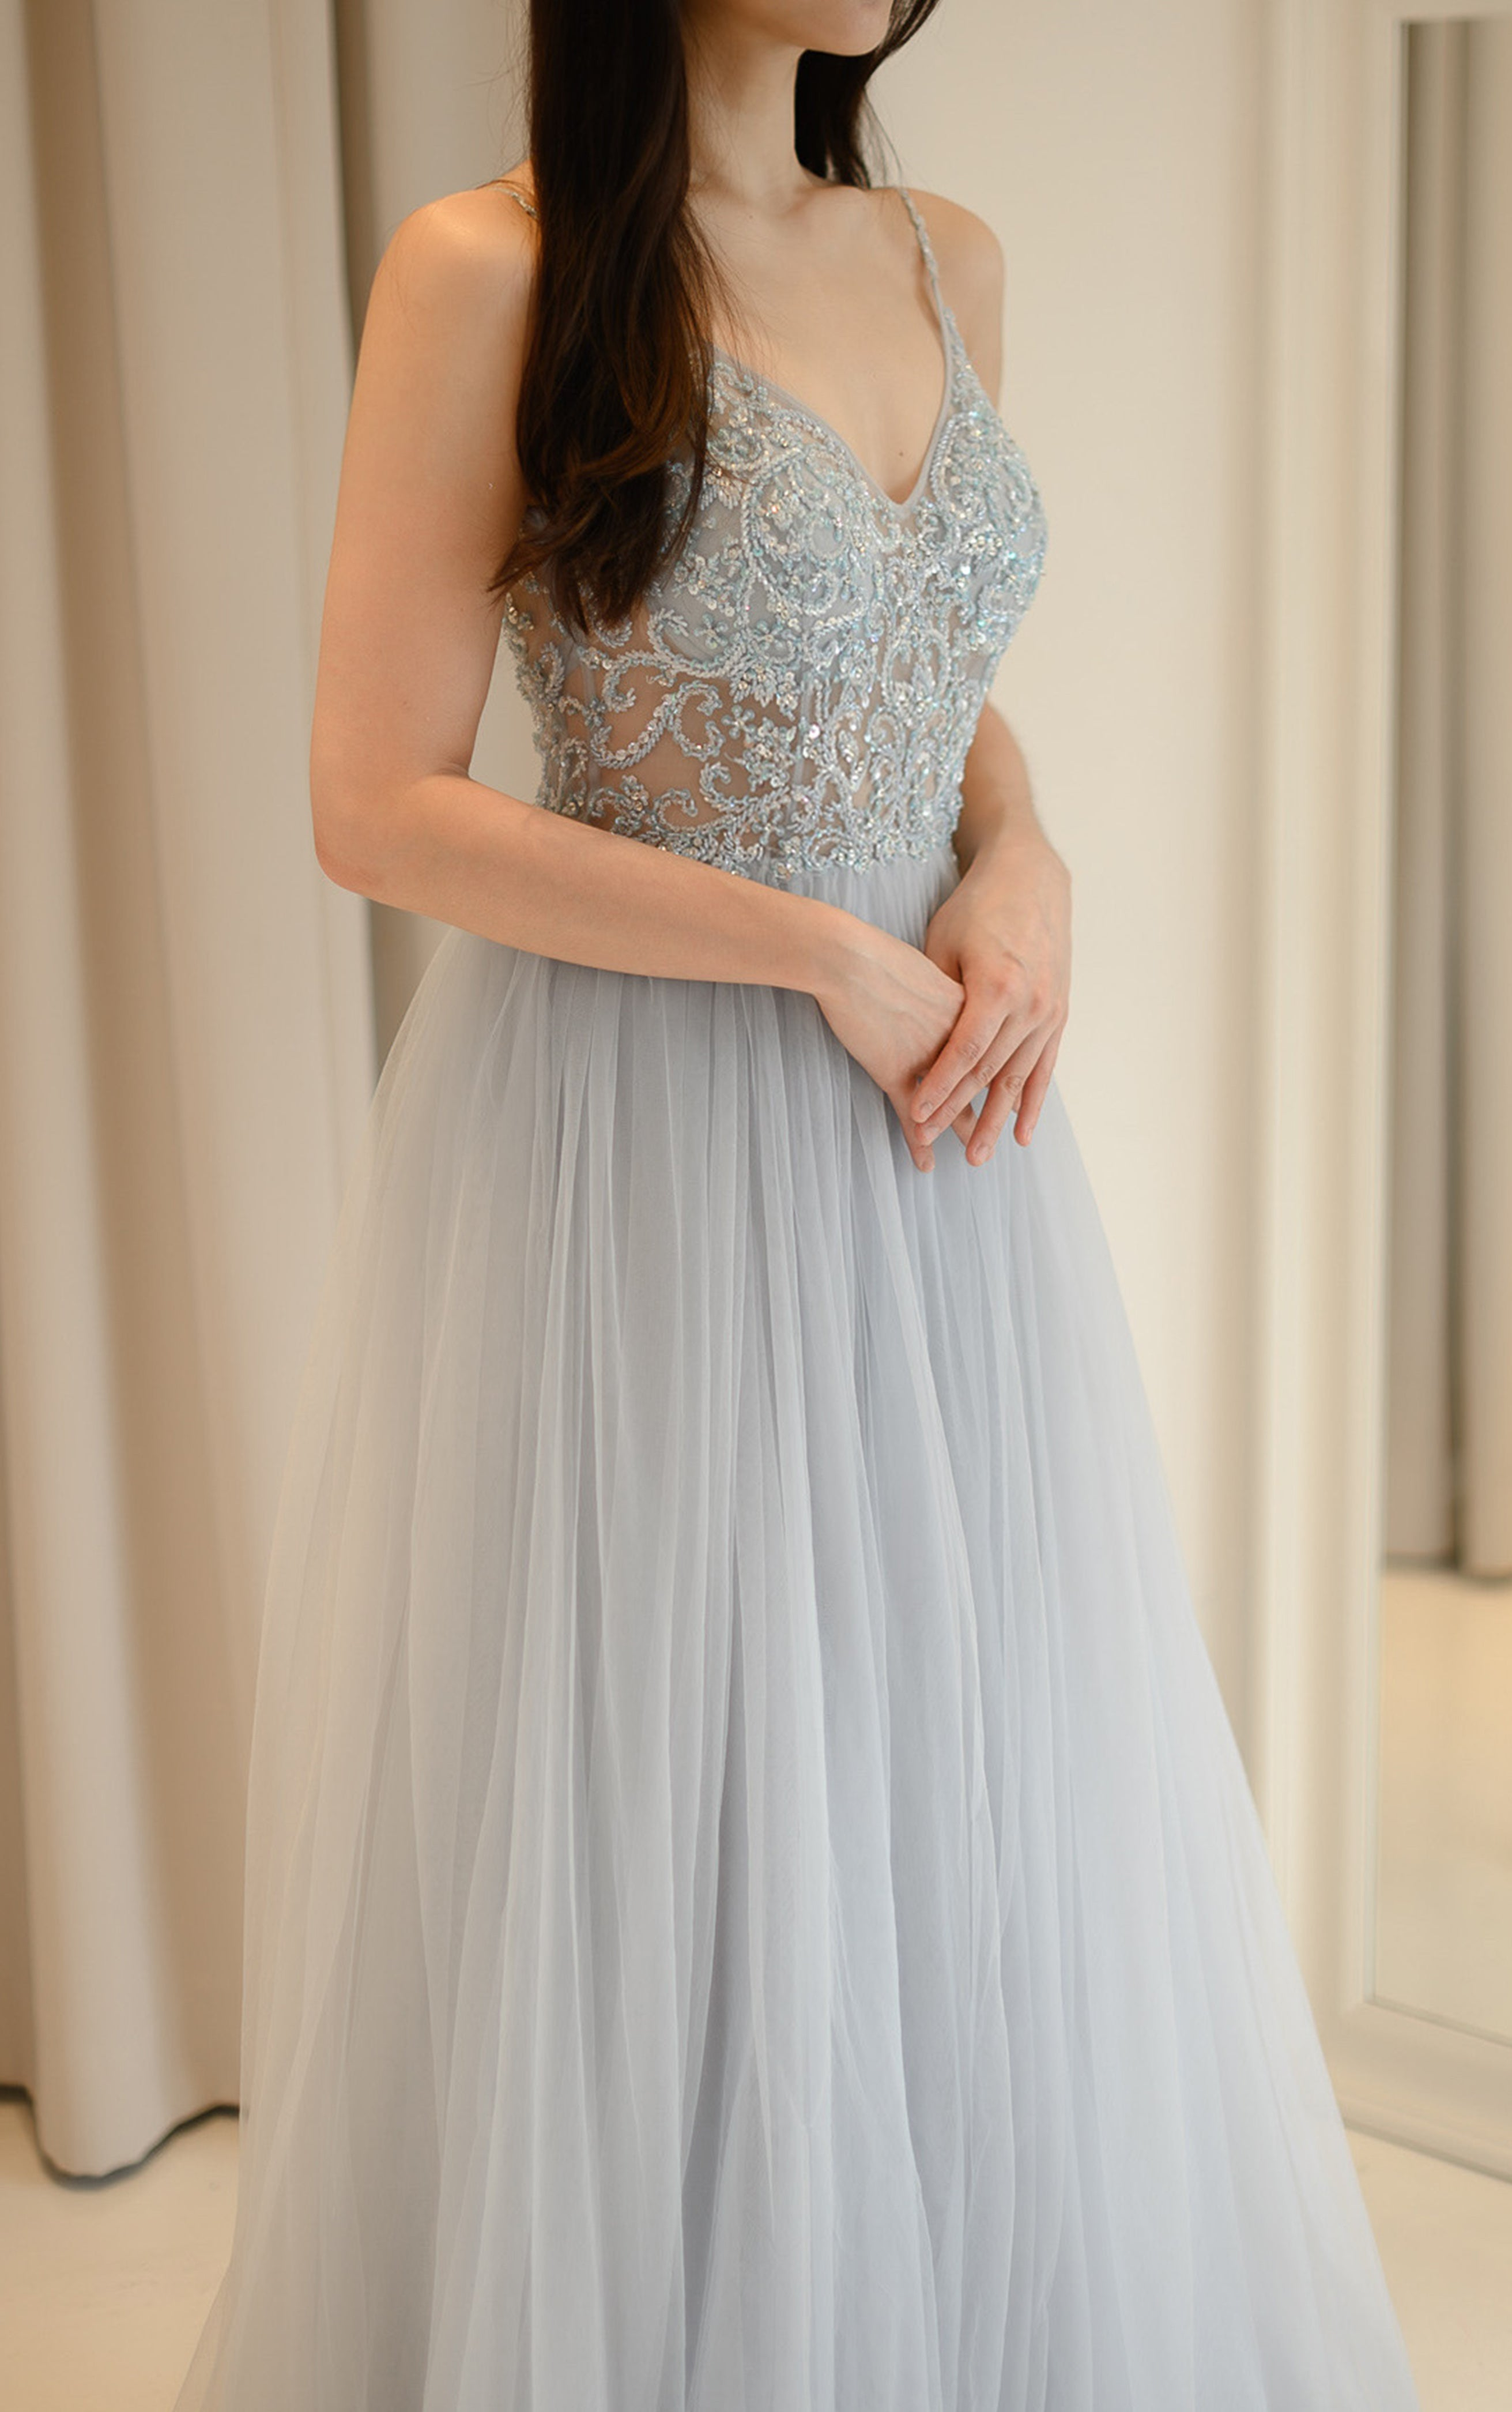 Venus Crystal Light Blue Gown